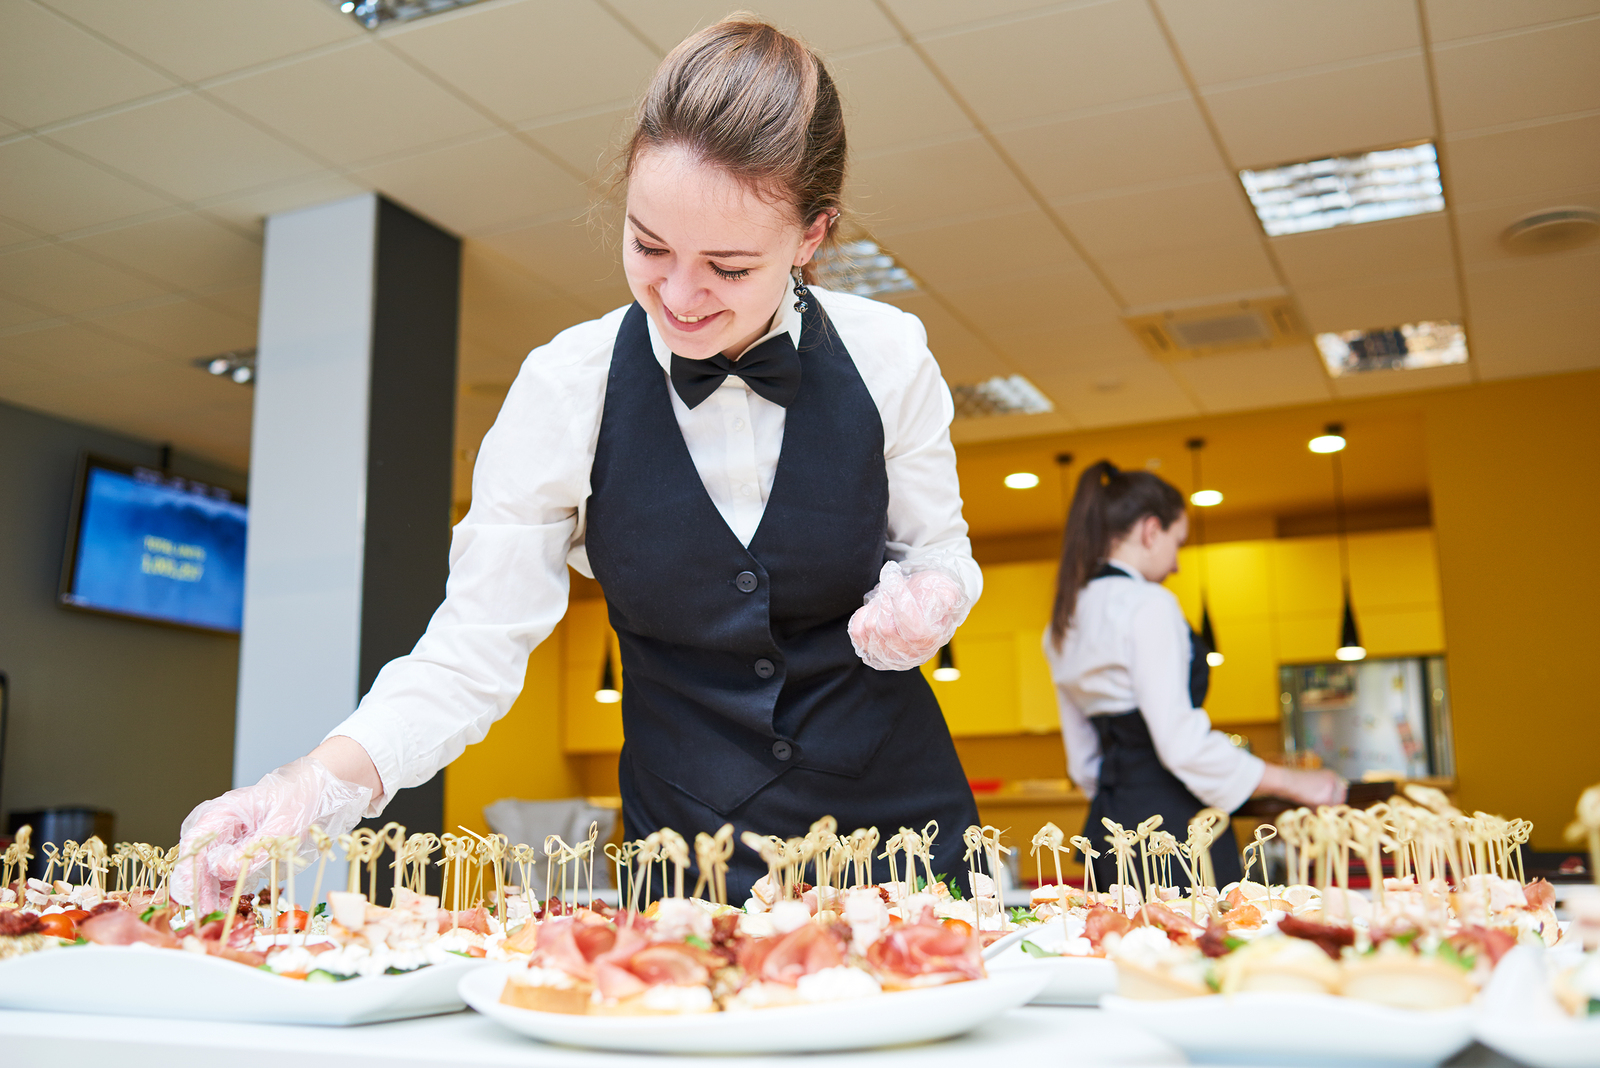 Restaurant waitress serving table with food - Party Staff